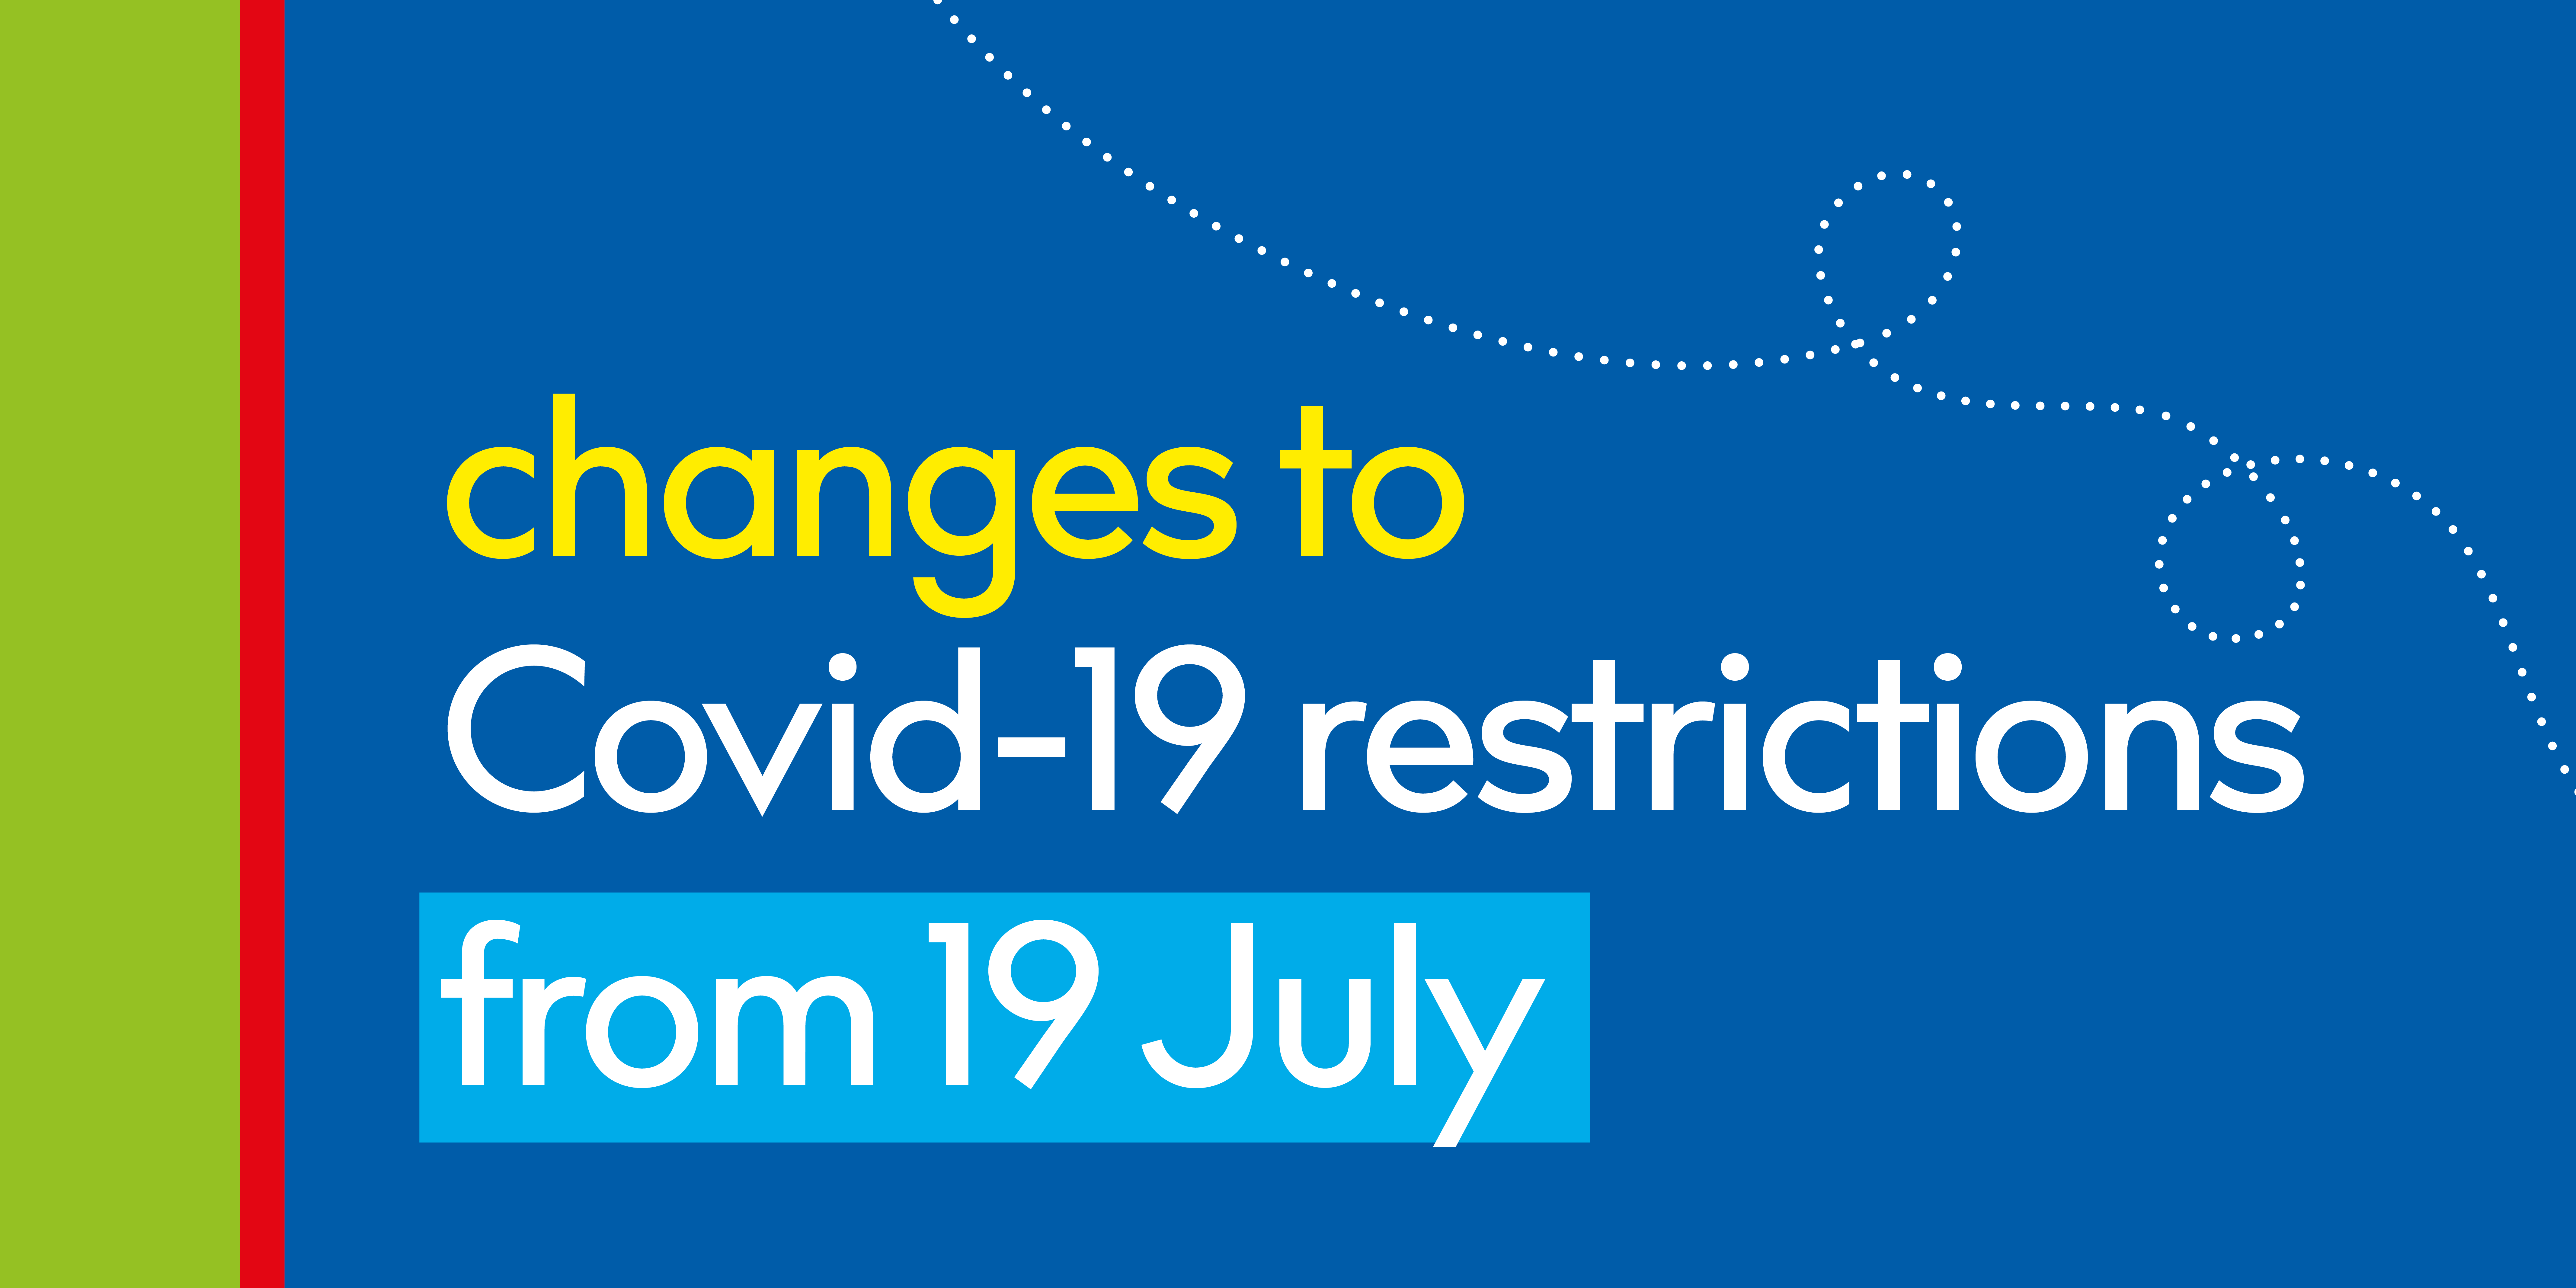 Changes to covid-19 restrictions in text